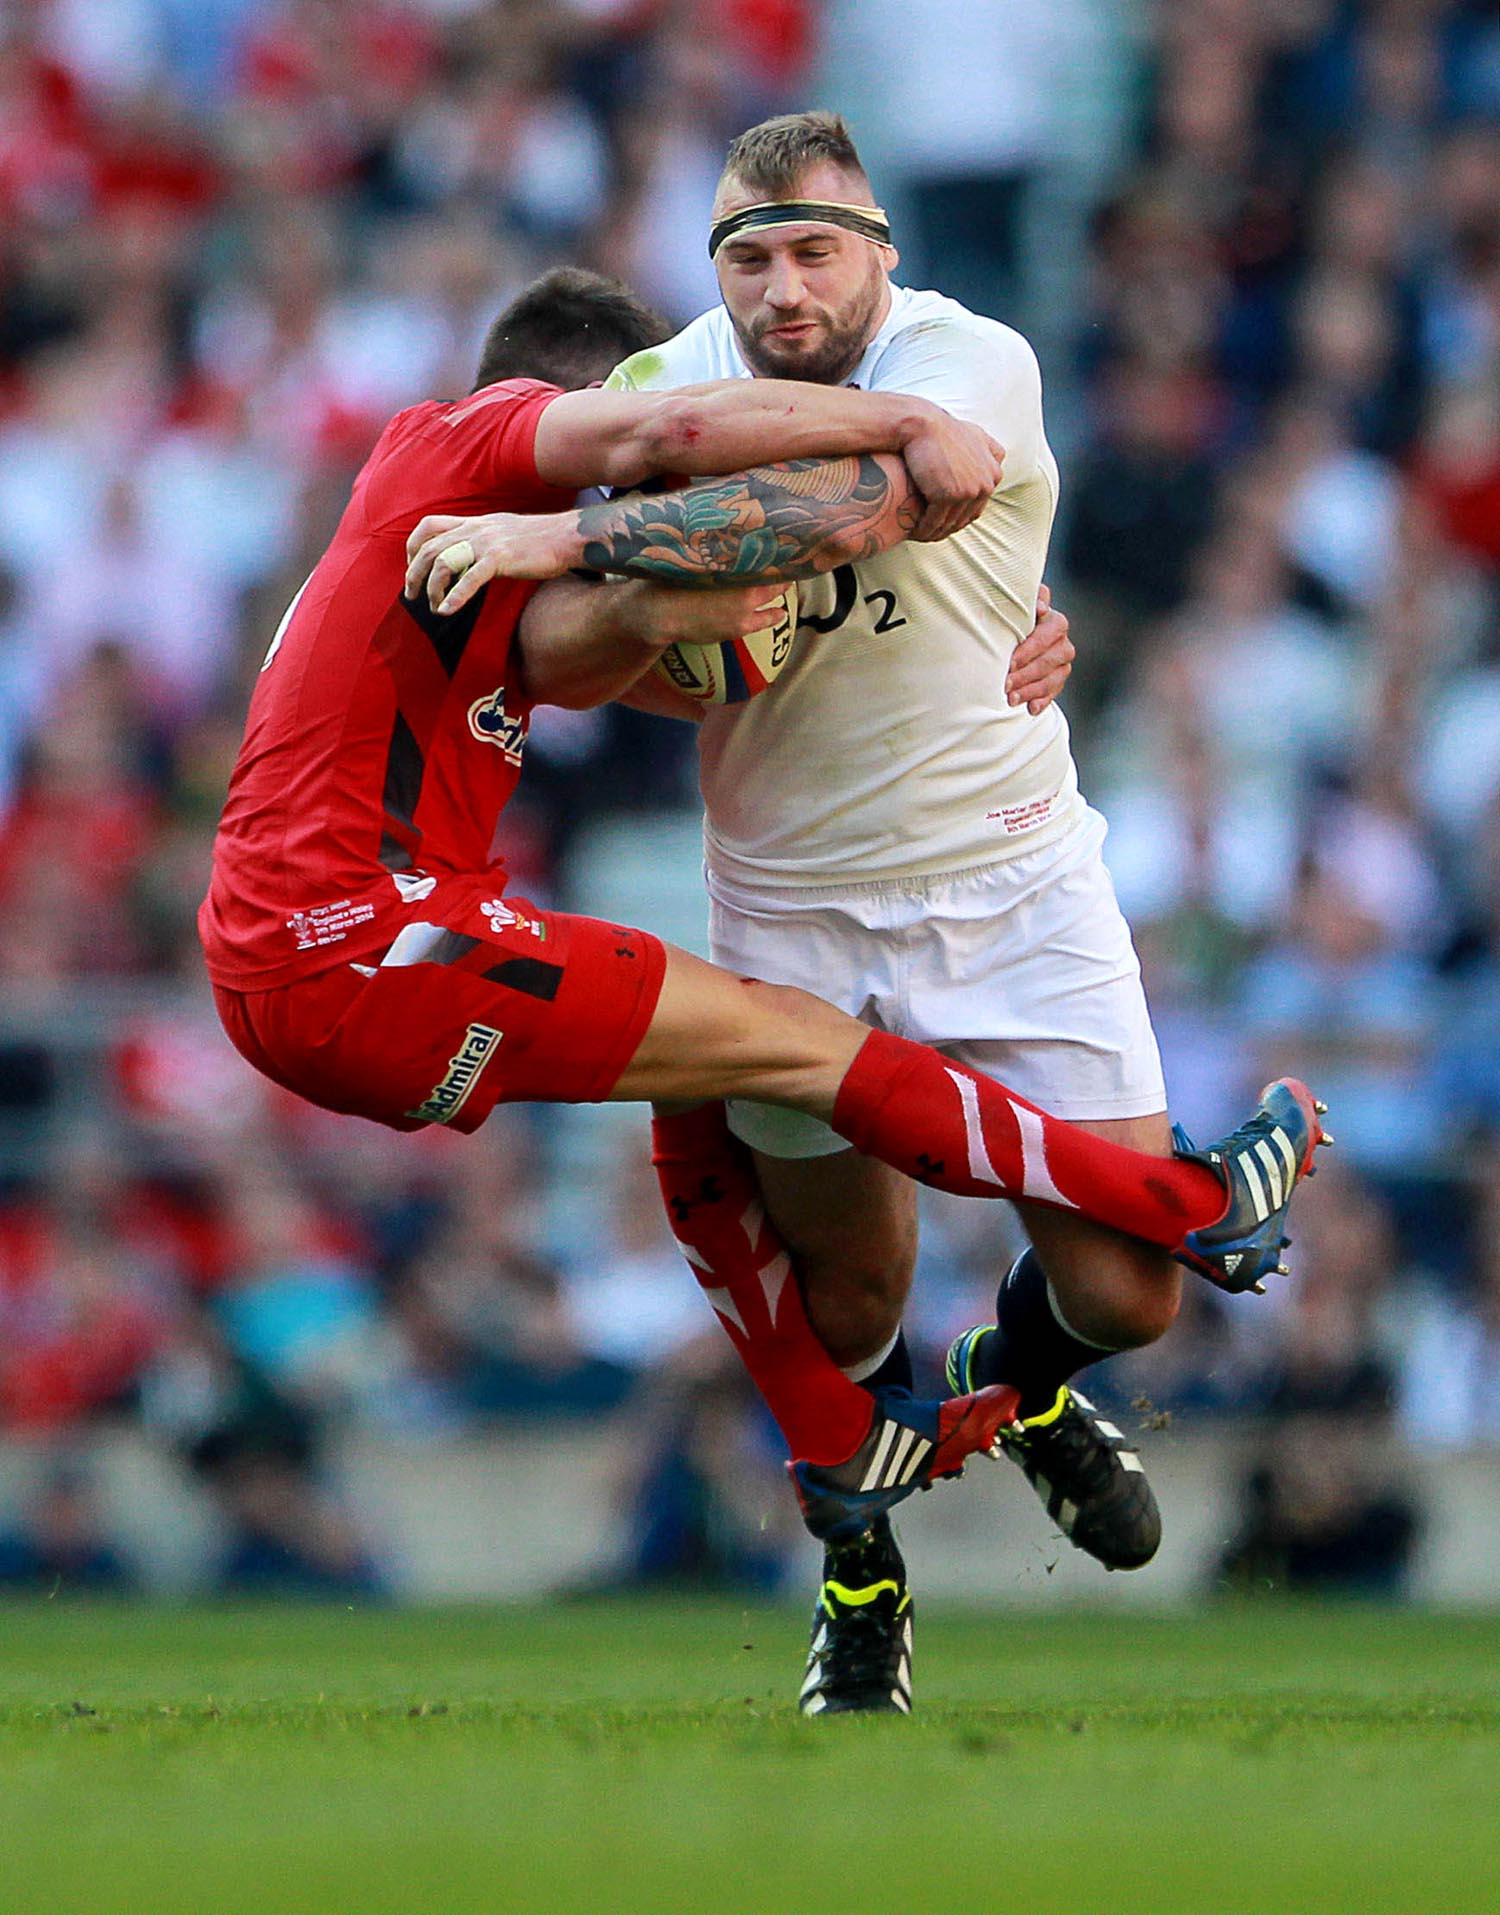 Joe Marler of England is tackled by Rhys Webb of Wales